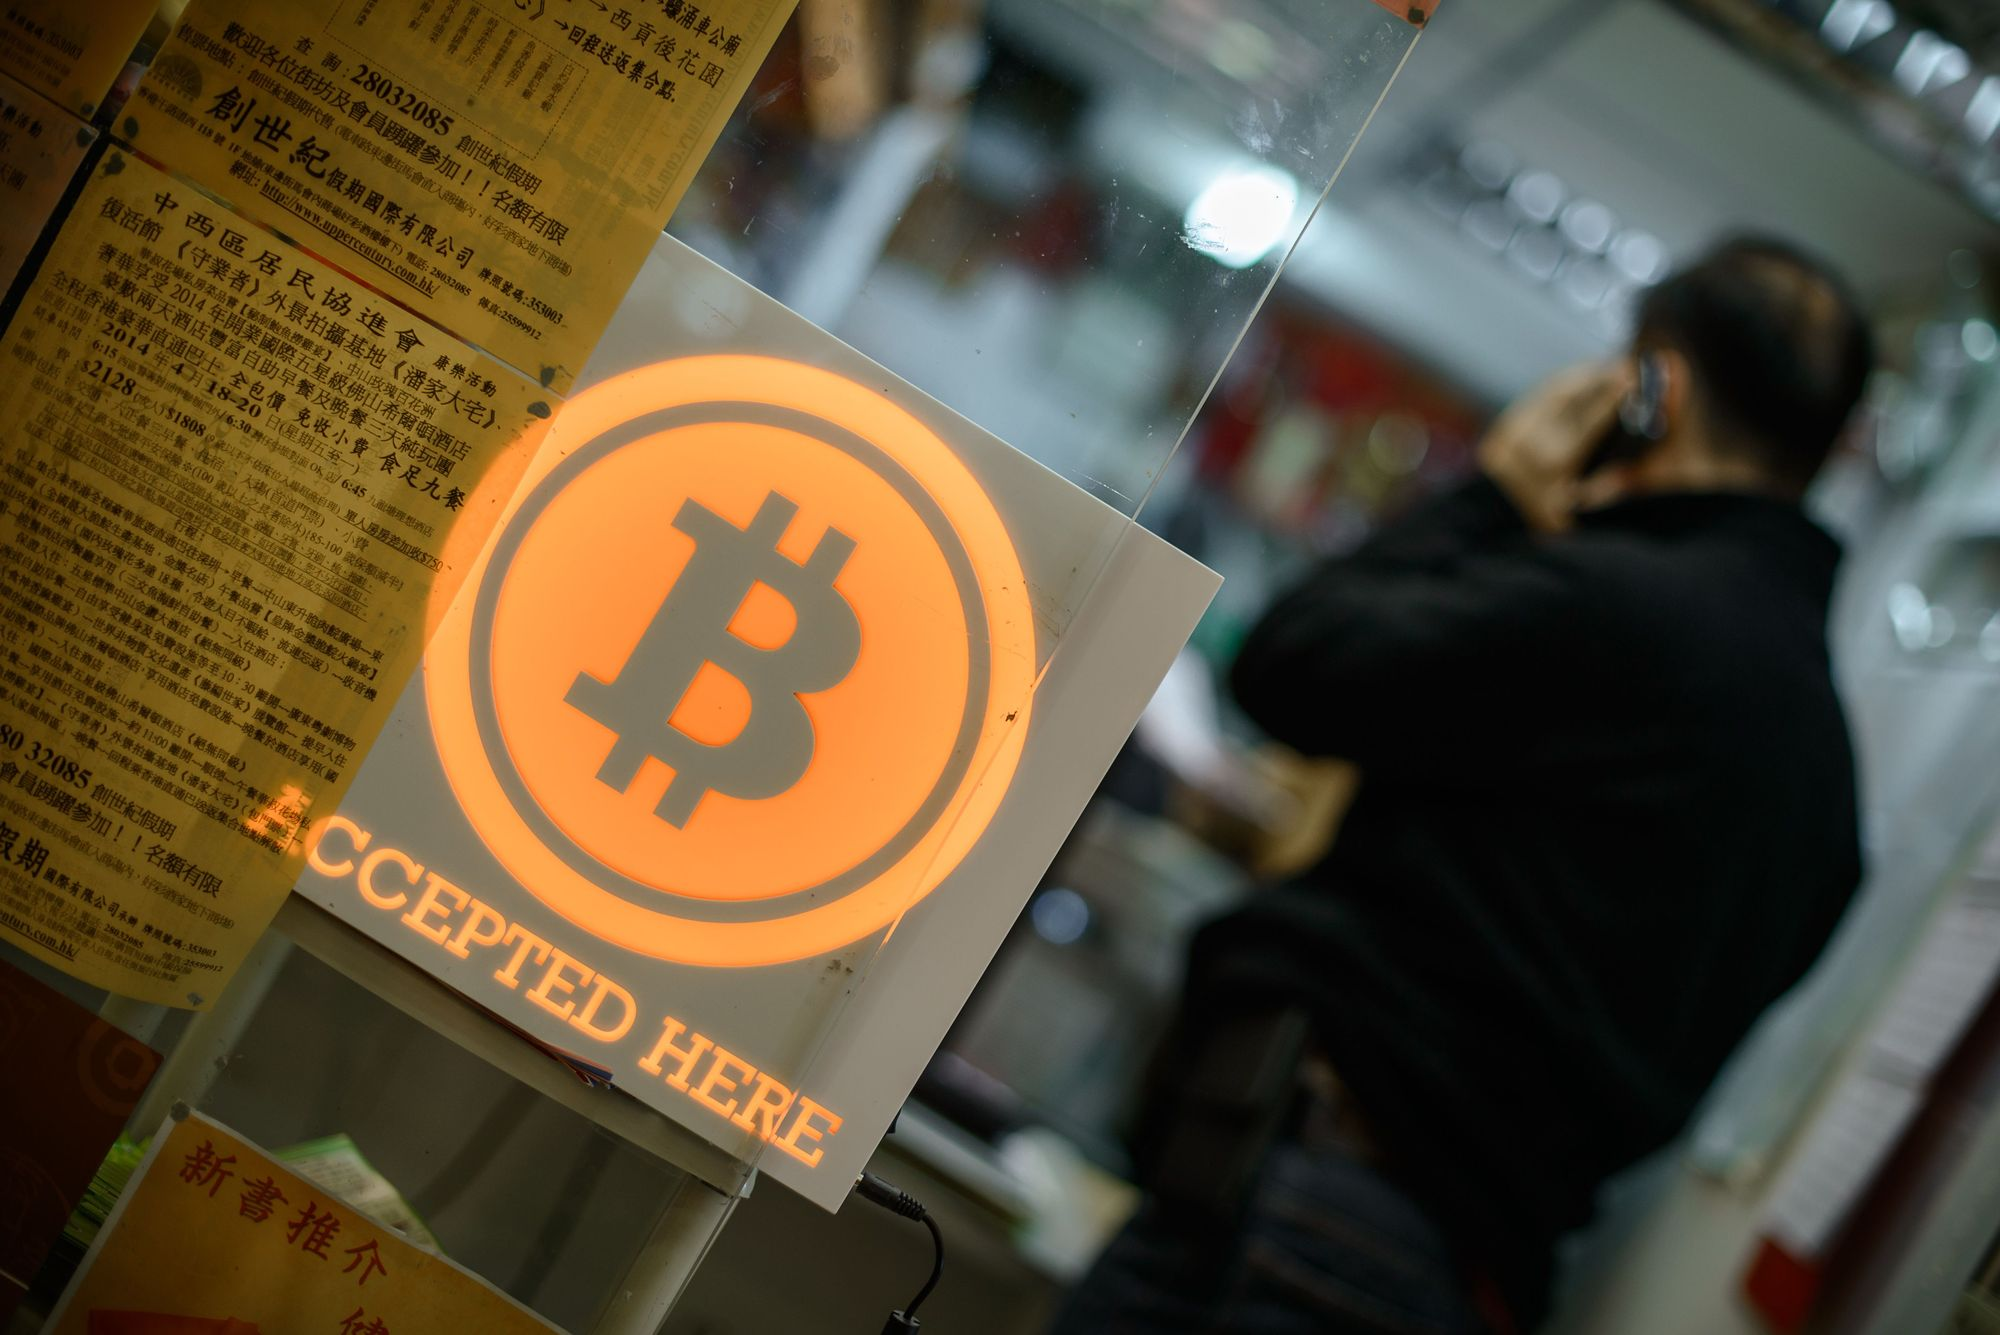 Bitcoin Adoption Crippled by Public's 'Serious Mental Barrier'